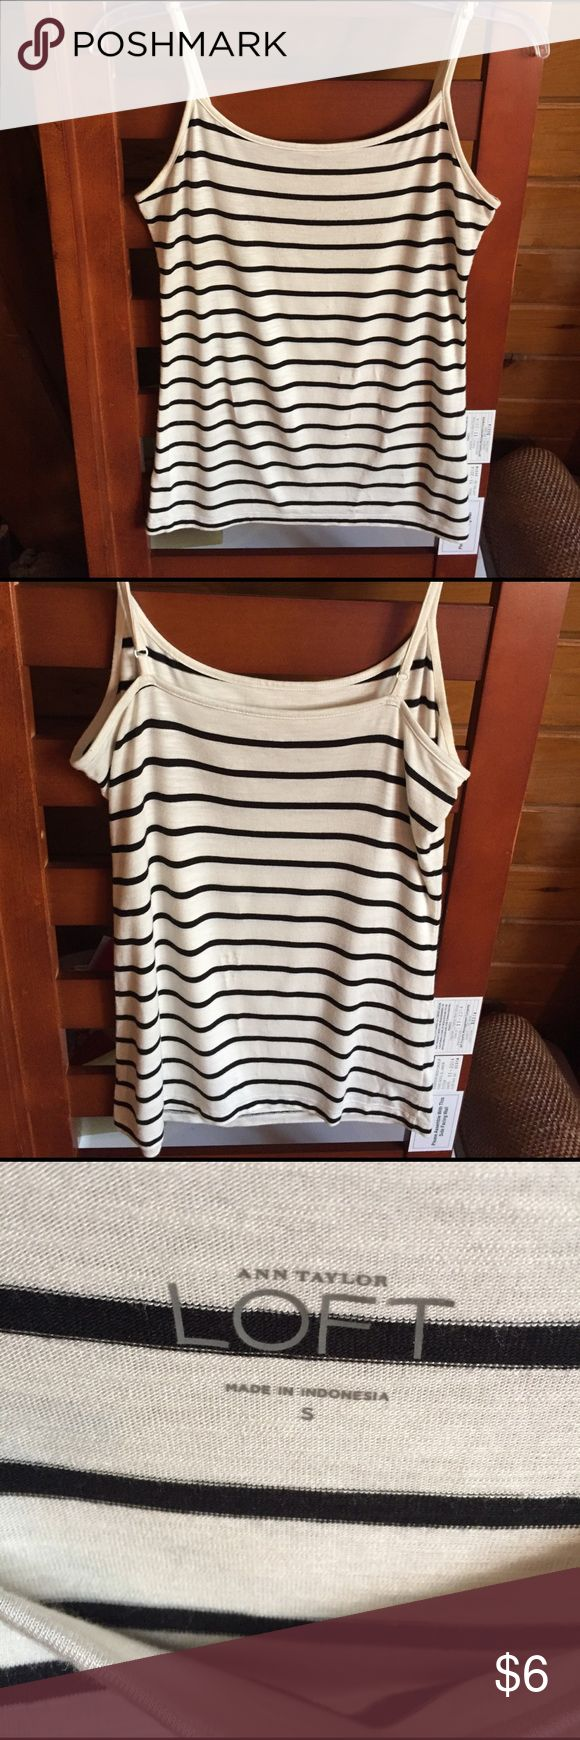 LOFT Ann Taylor size S Cami Blue and cream nautical stripes with adjustable straps. Like new. LOFT Tops Camisoles